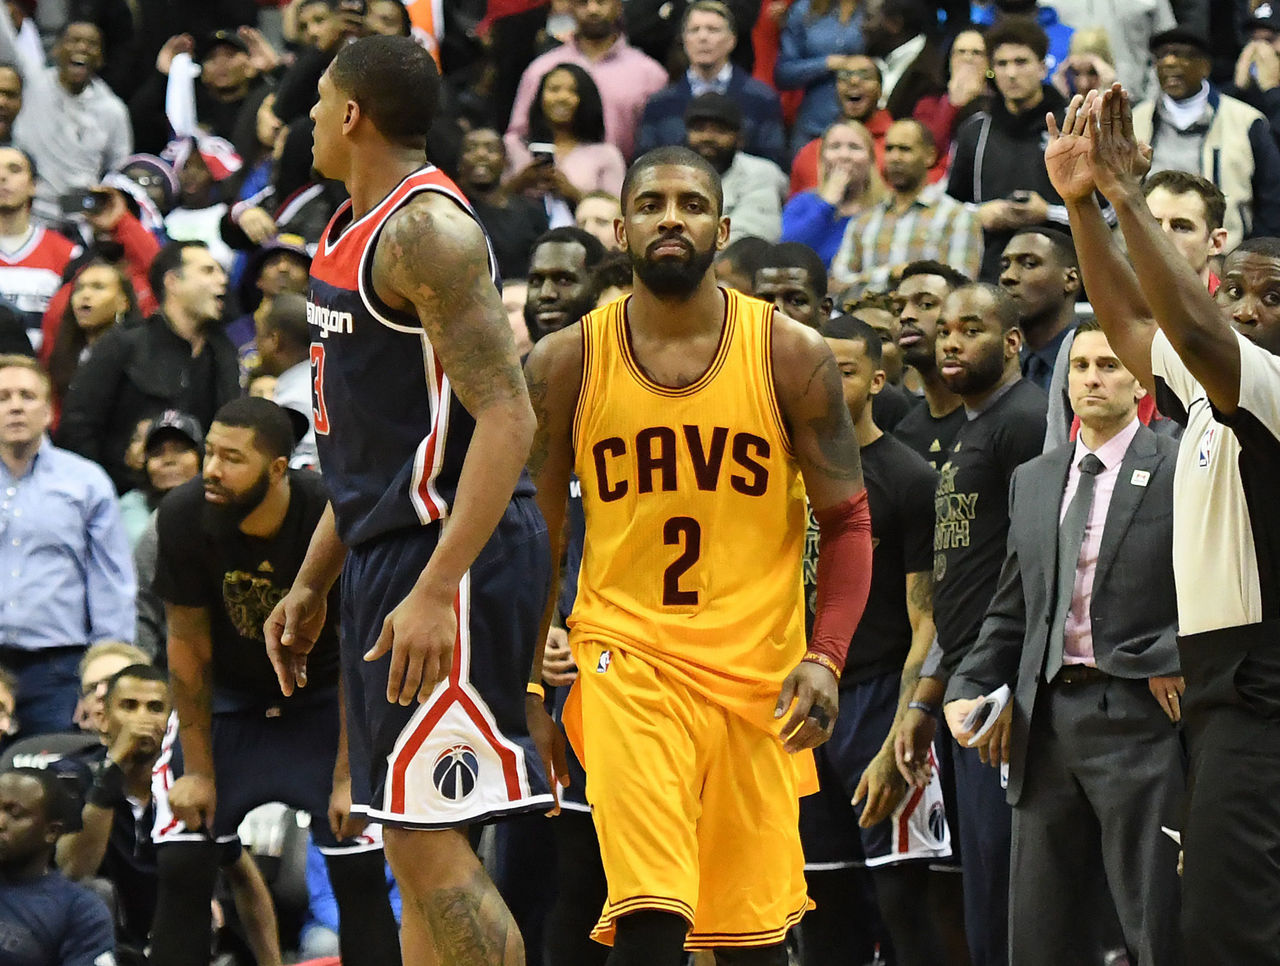 Cropped_2017-02-07t032431z_2065535067_nocid_rtrmadp_3_nba-cleveland-cavaliers-at-washington-wizards